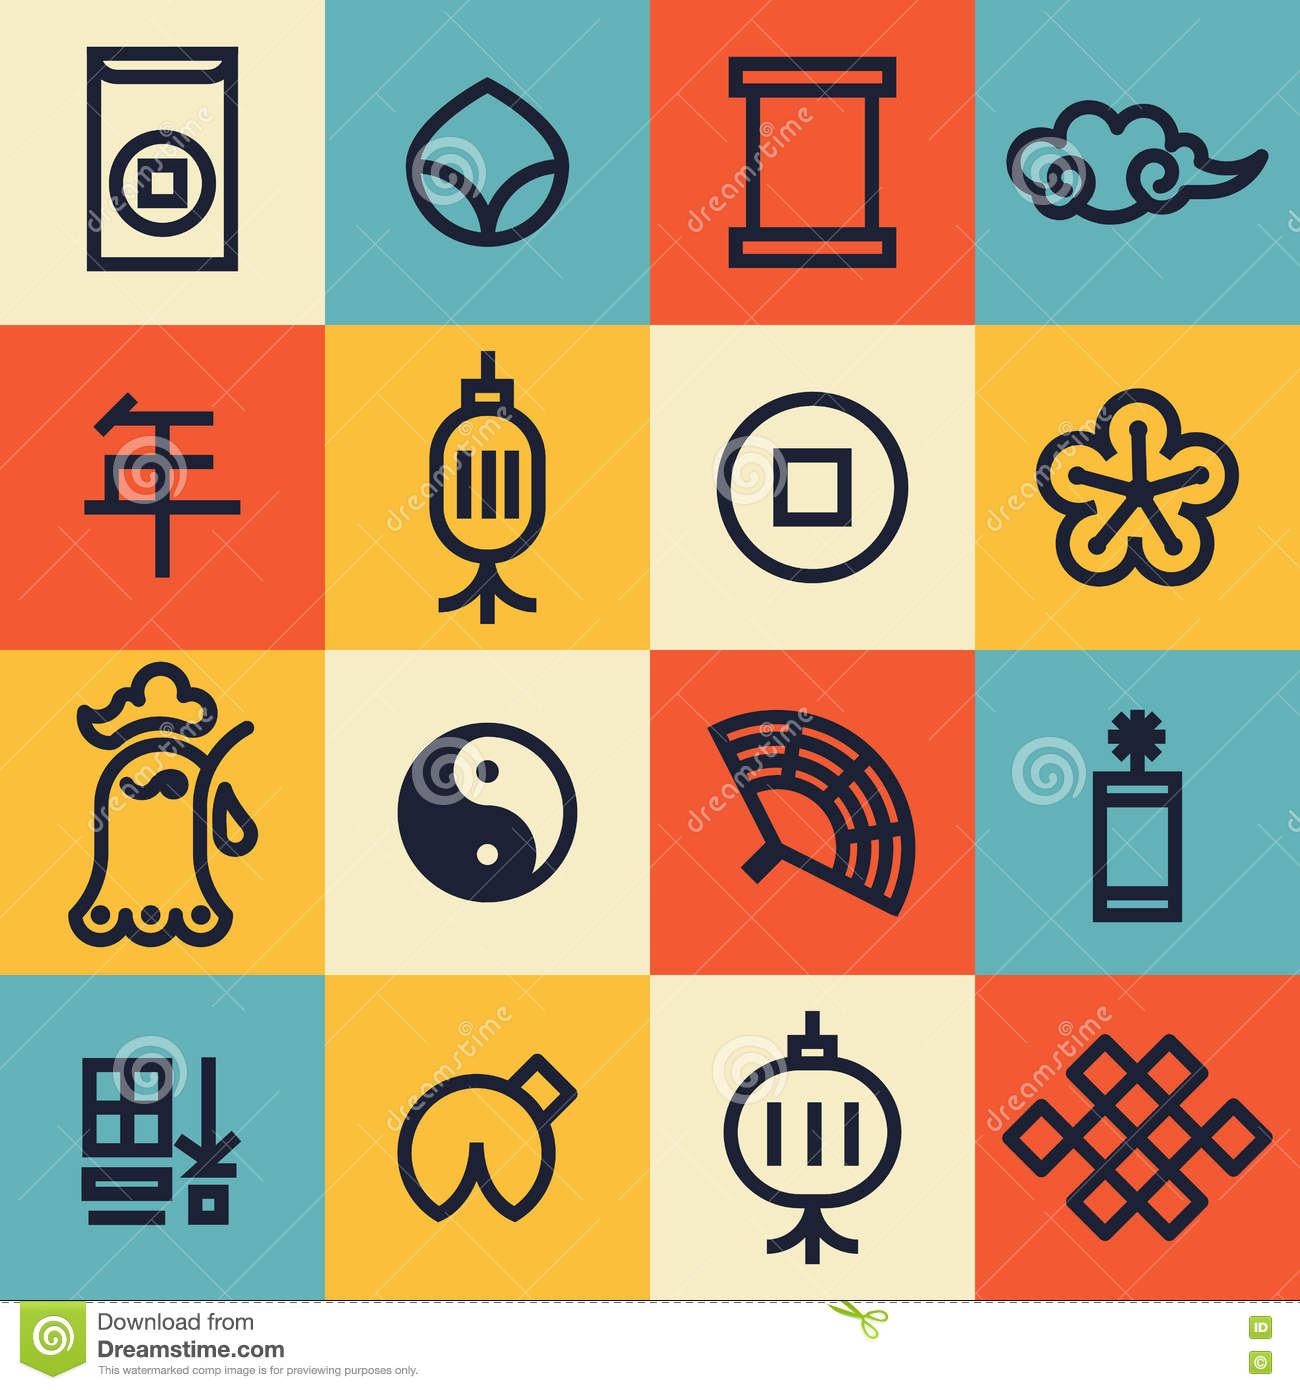 Hinese new year 2017 cute modern linear icons stock vector hinese new year 2017 cute modern linear icons biocorpaavc